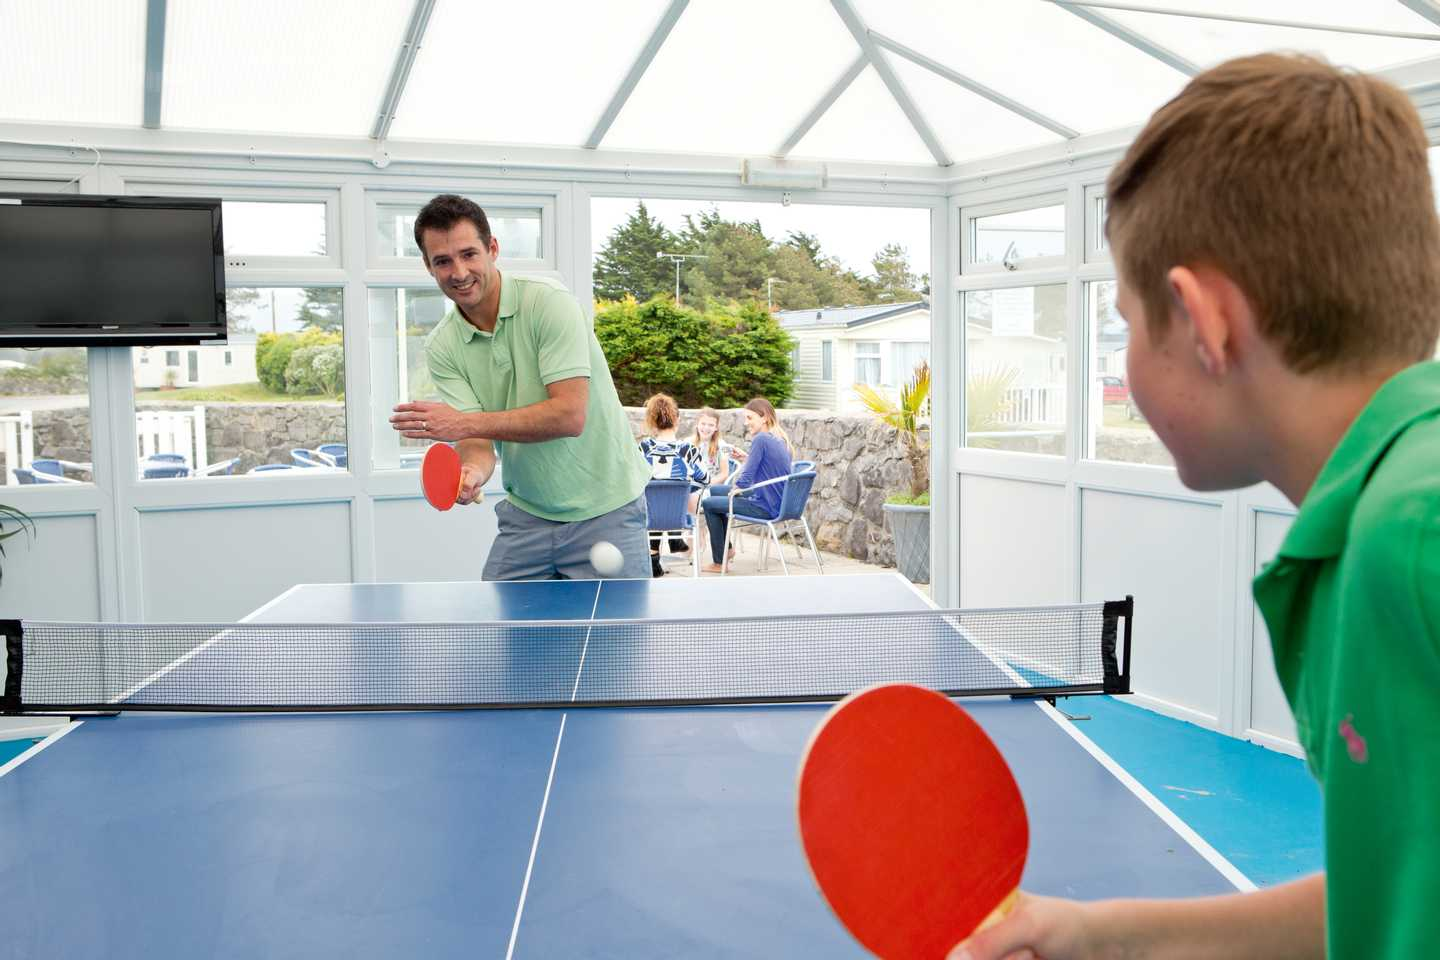 A father and son playing table tennis